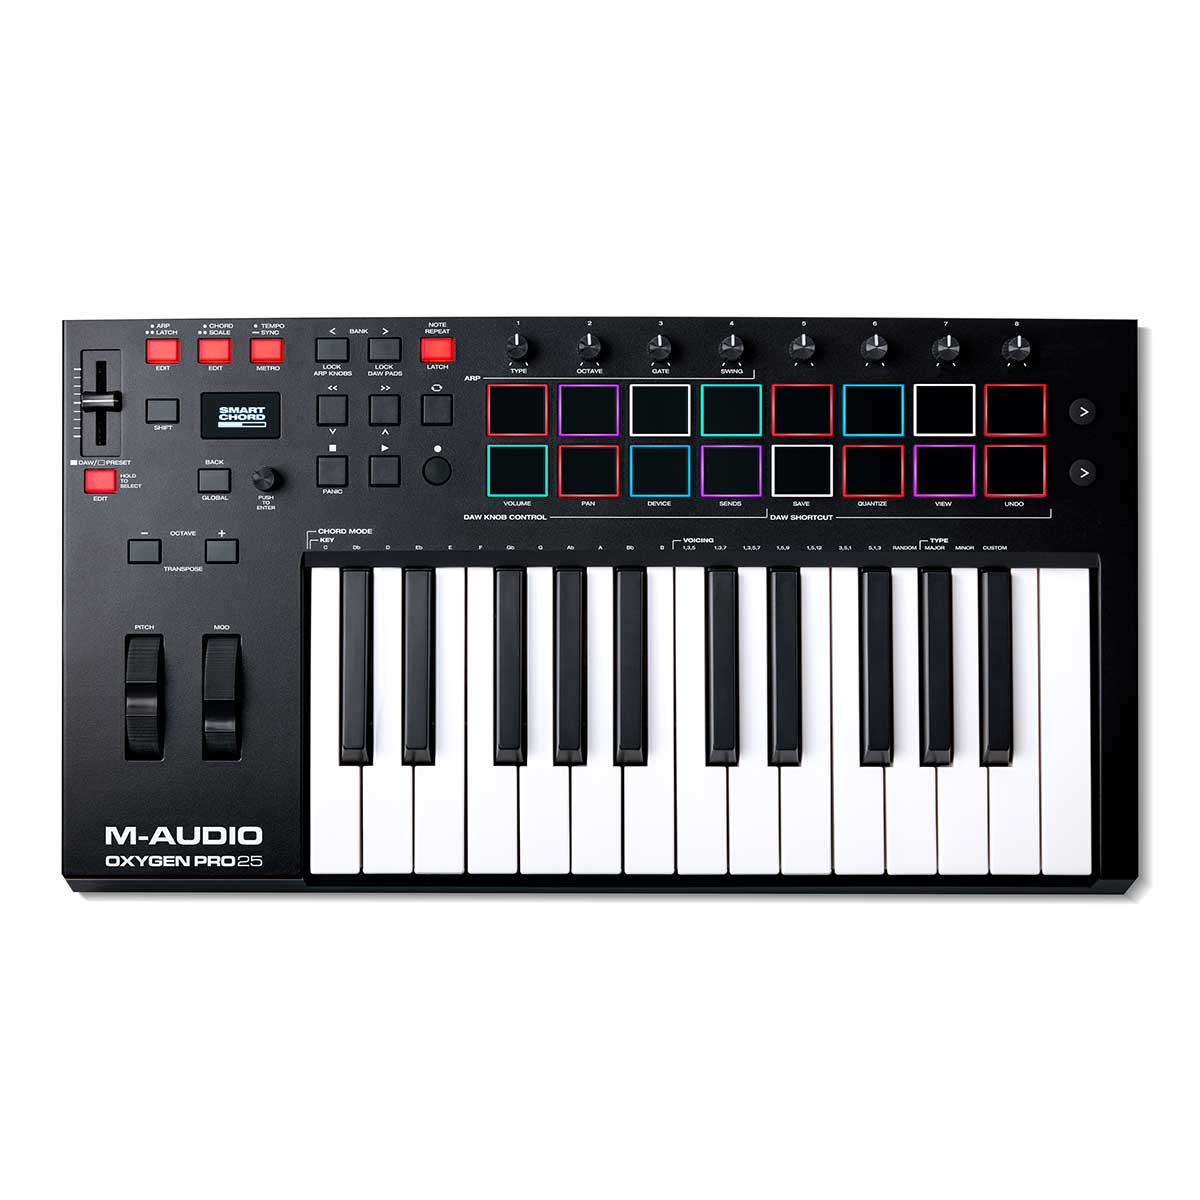 M-Audio Oxygen Pro 25 25 Note USB Controller Keyboard